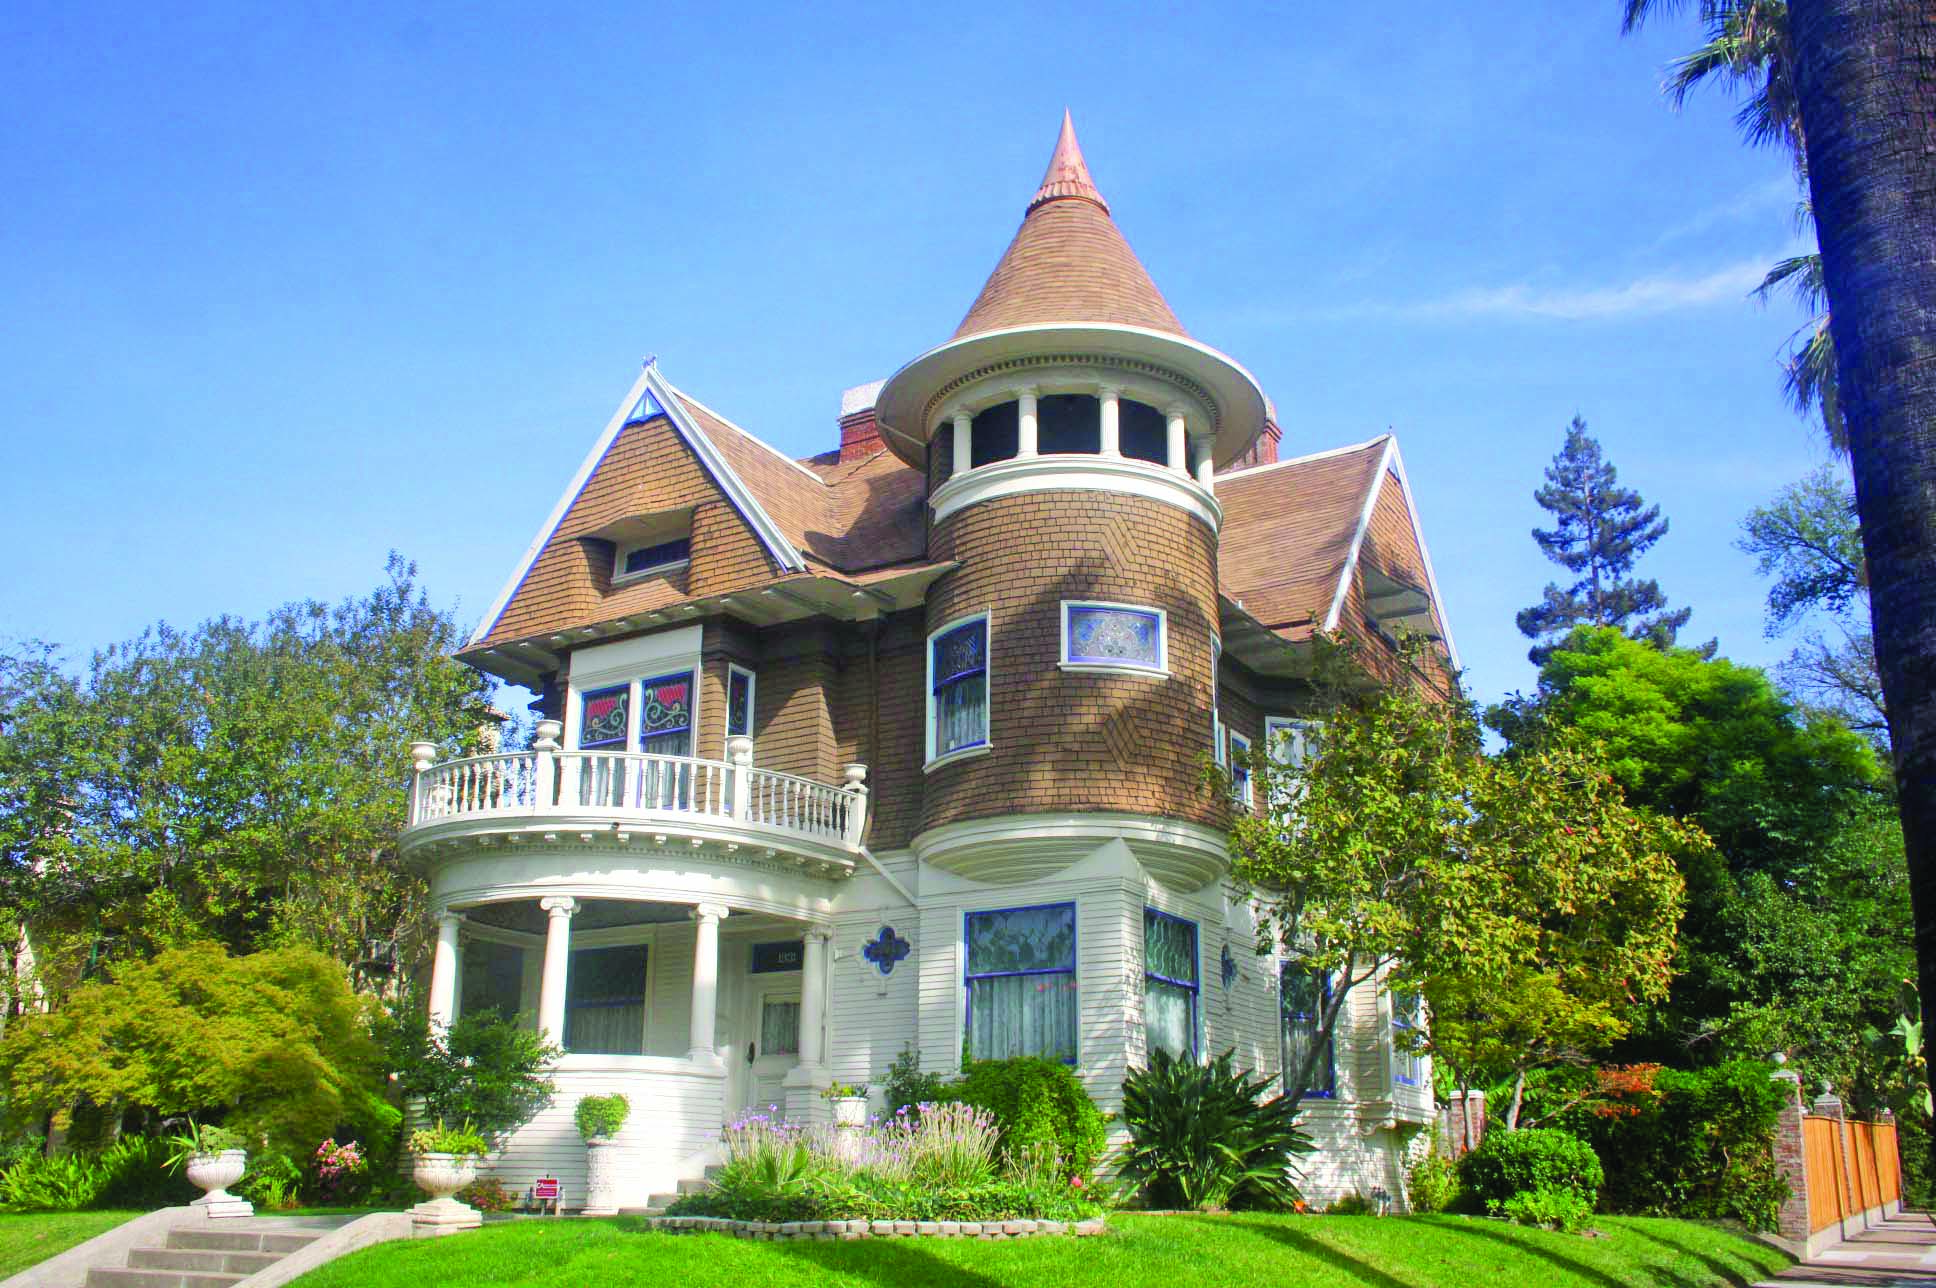 locally famous mansion was home to successful laundry owner this queen anne shingle style victorian home at the northeast corner of 21st and t